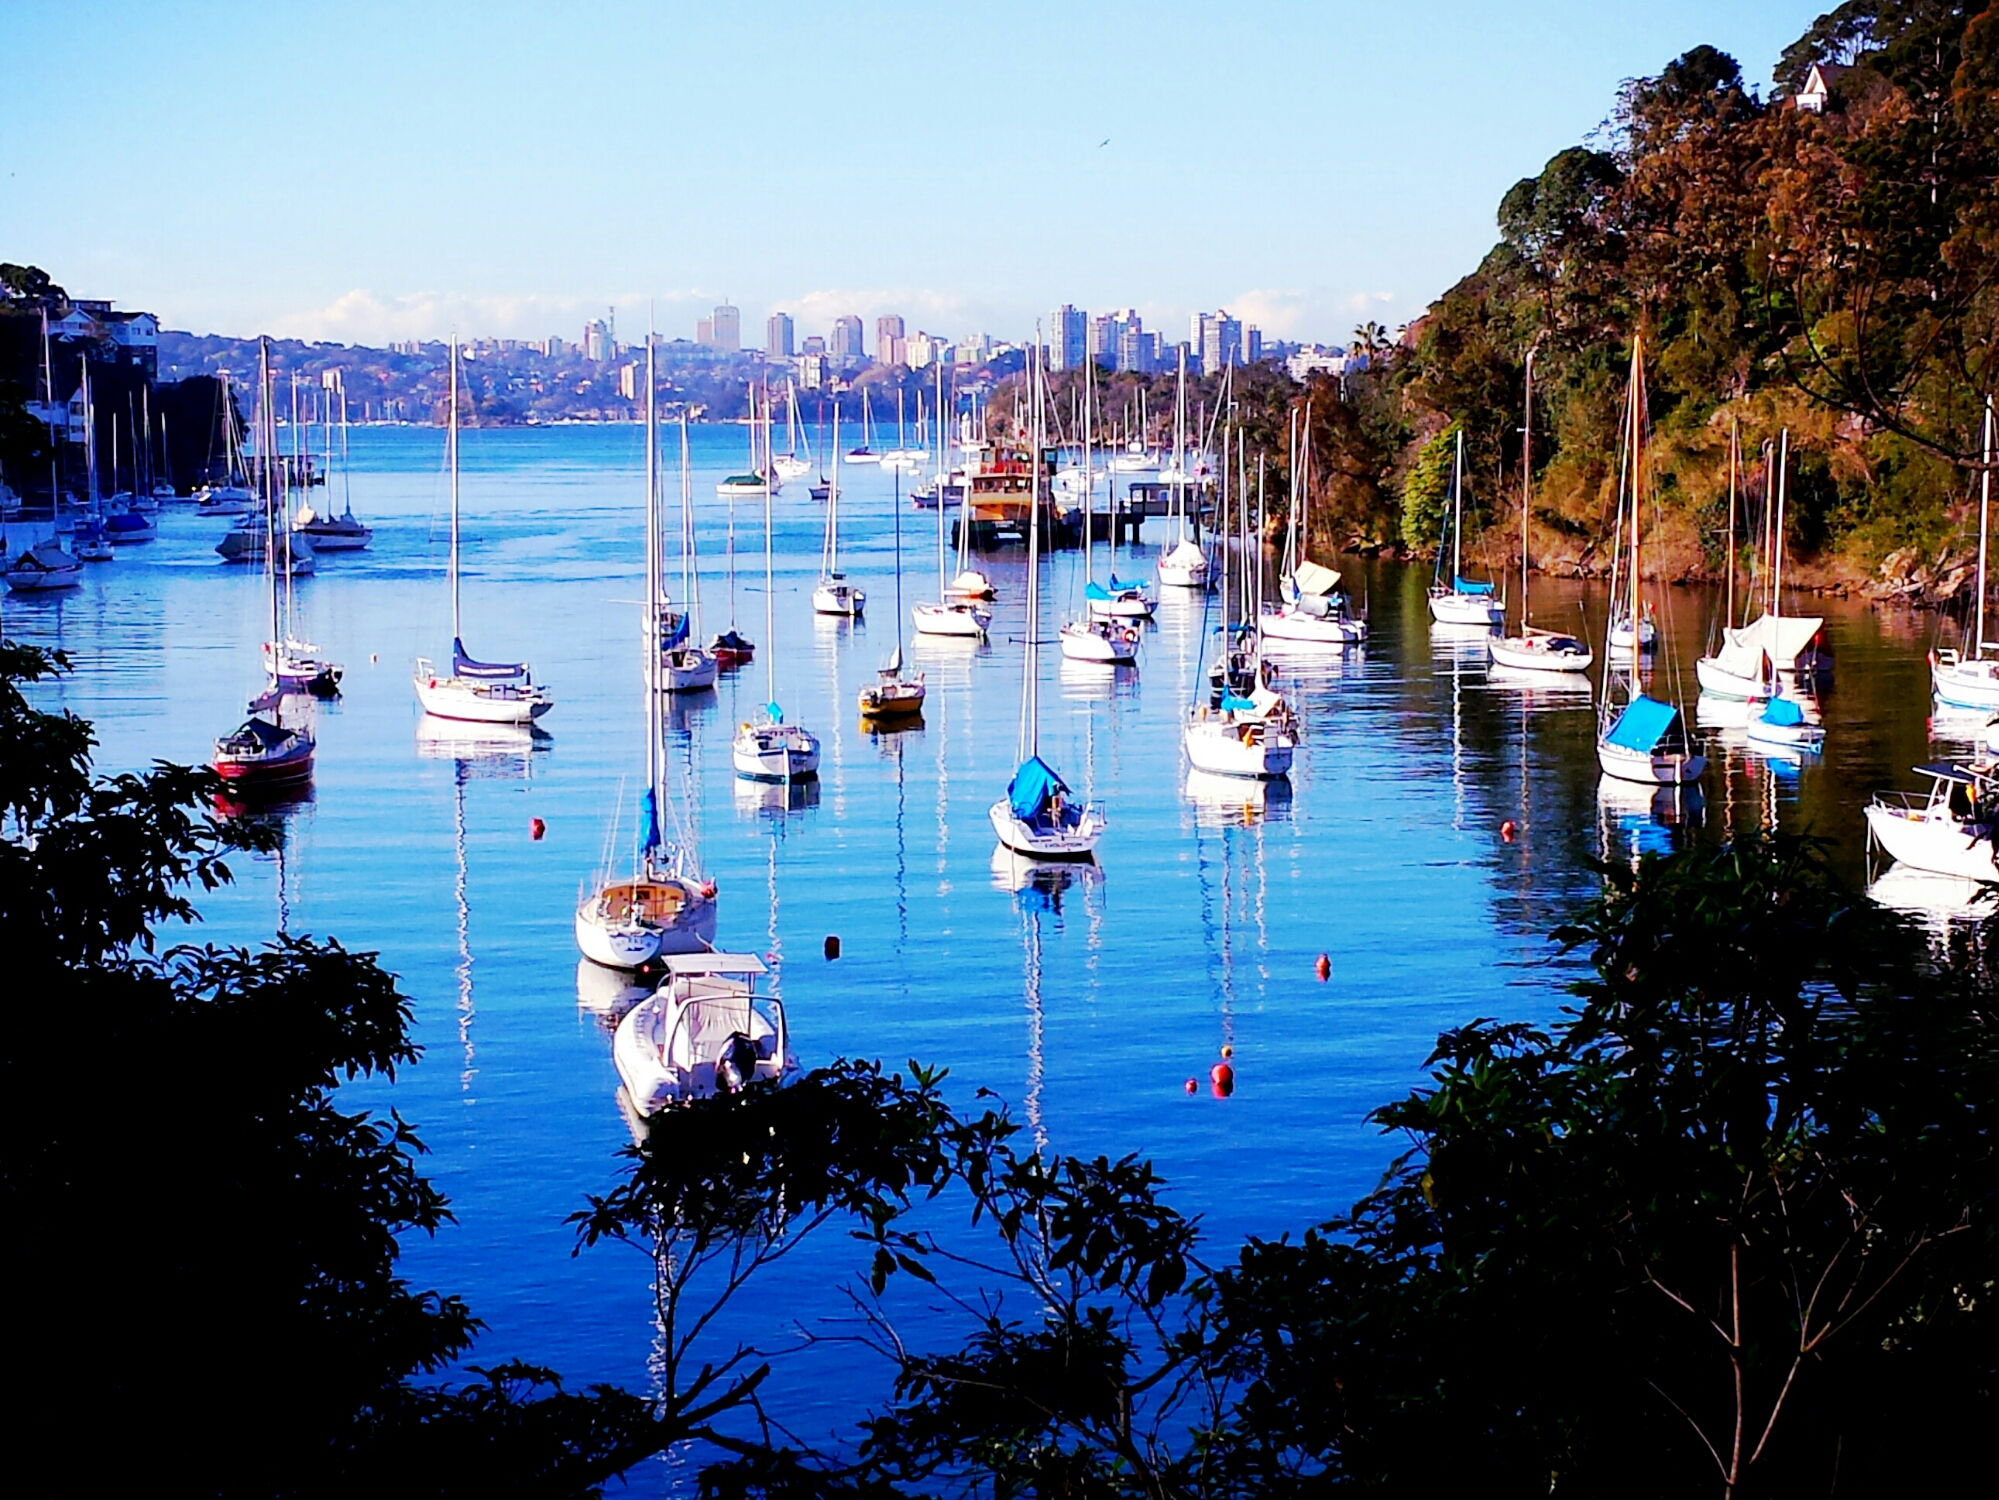 Serenity at Cremorne Point